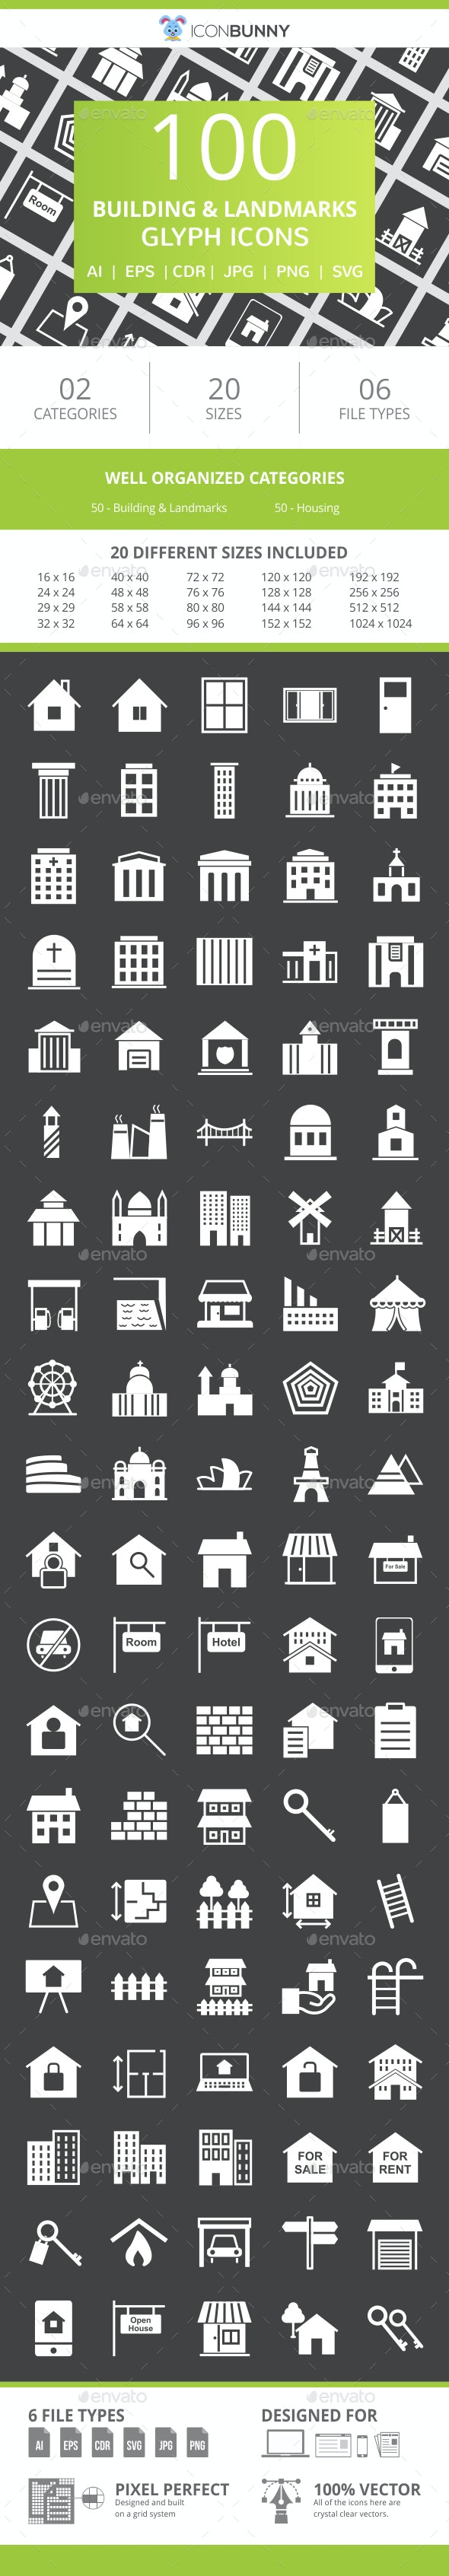 100 Building & Landmarks Glyph Inverted Icons - Icons